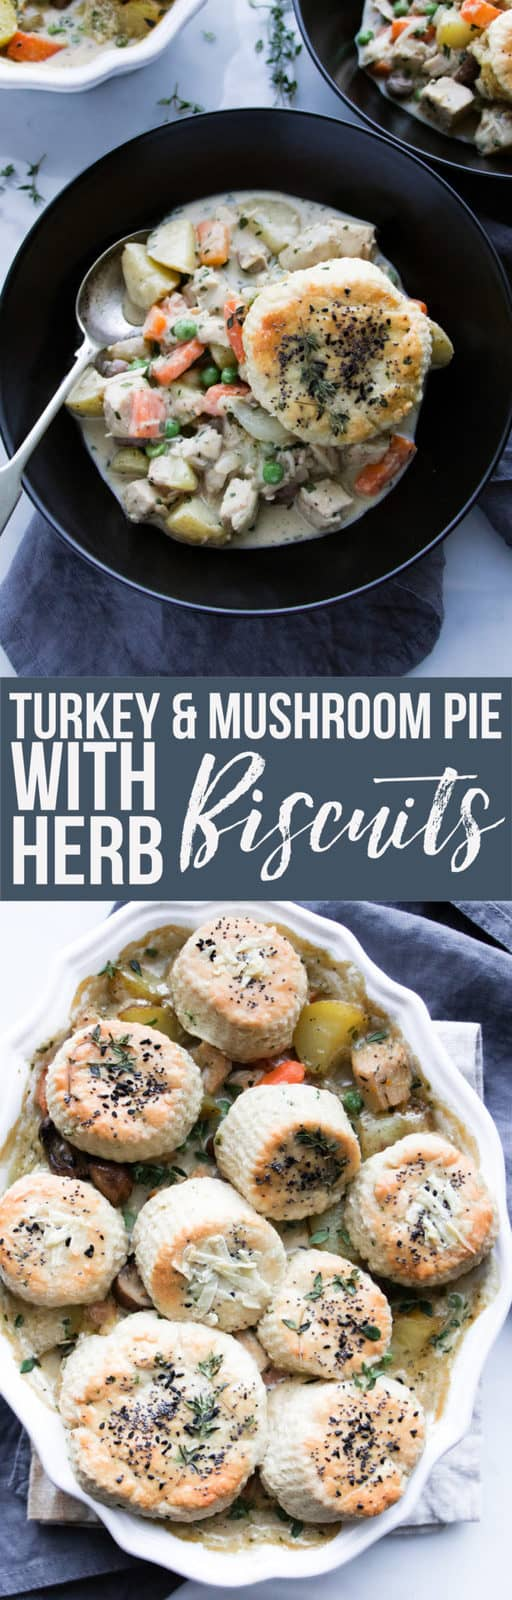 This turkey and mushroom pie with herb biscuit topping is the cosiest way to use up leftover turkey. The simple biscuit topping elevates this pie to a luxurious dinner. Perfect for cosy and casual entertaining. #pie #turkey #chicken #biscuits #turkeypotpie